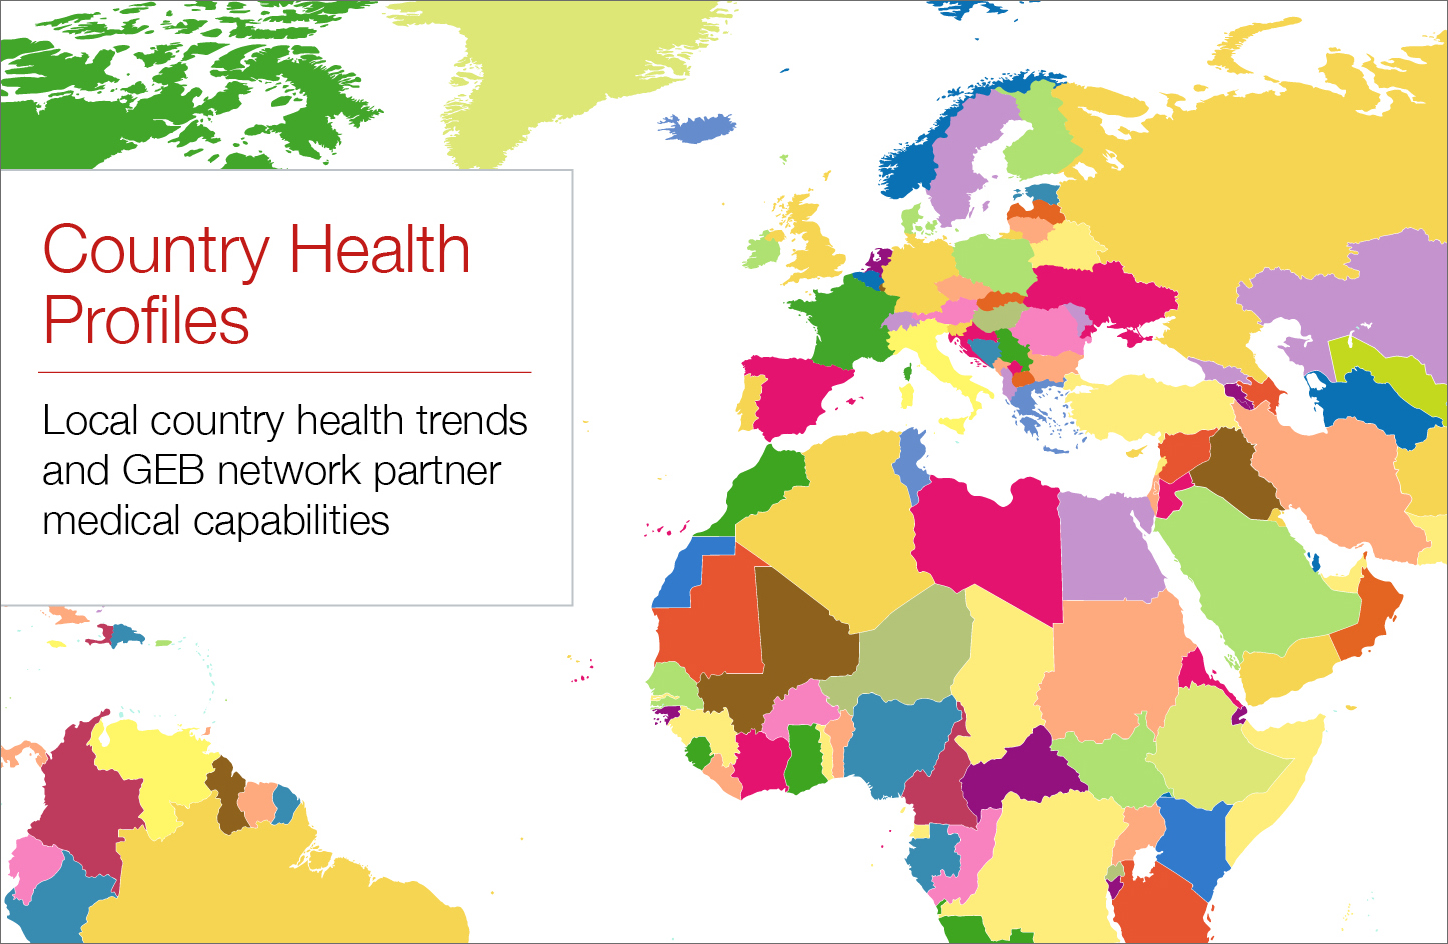 Country Health Profiles